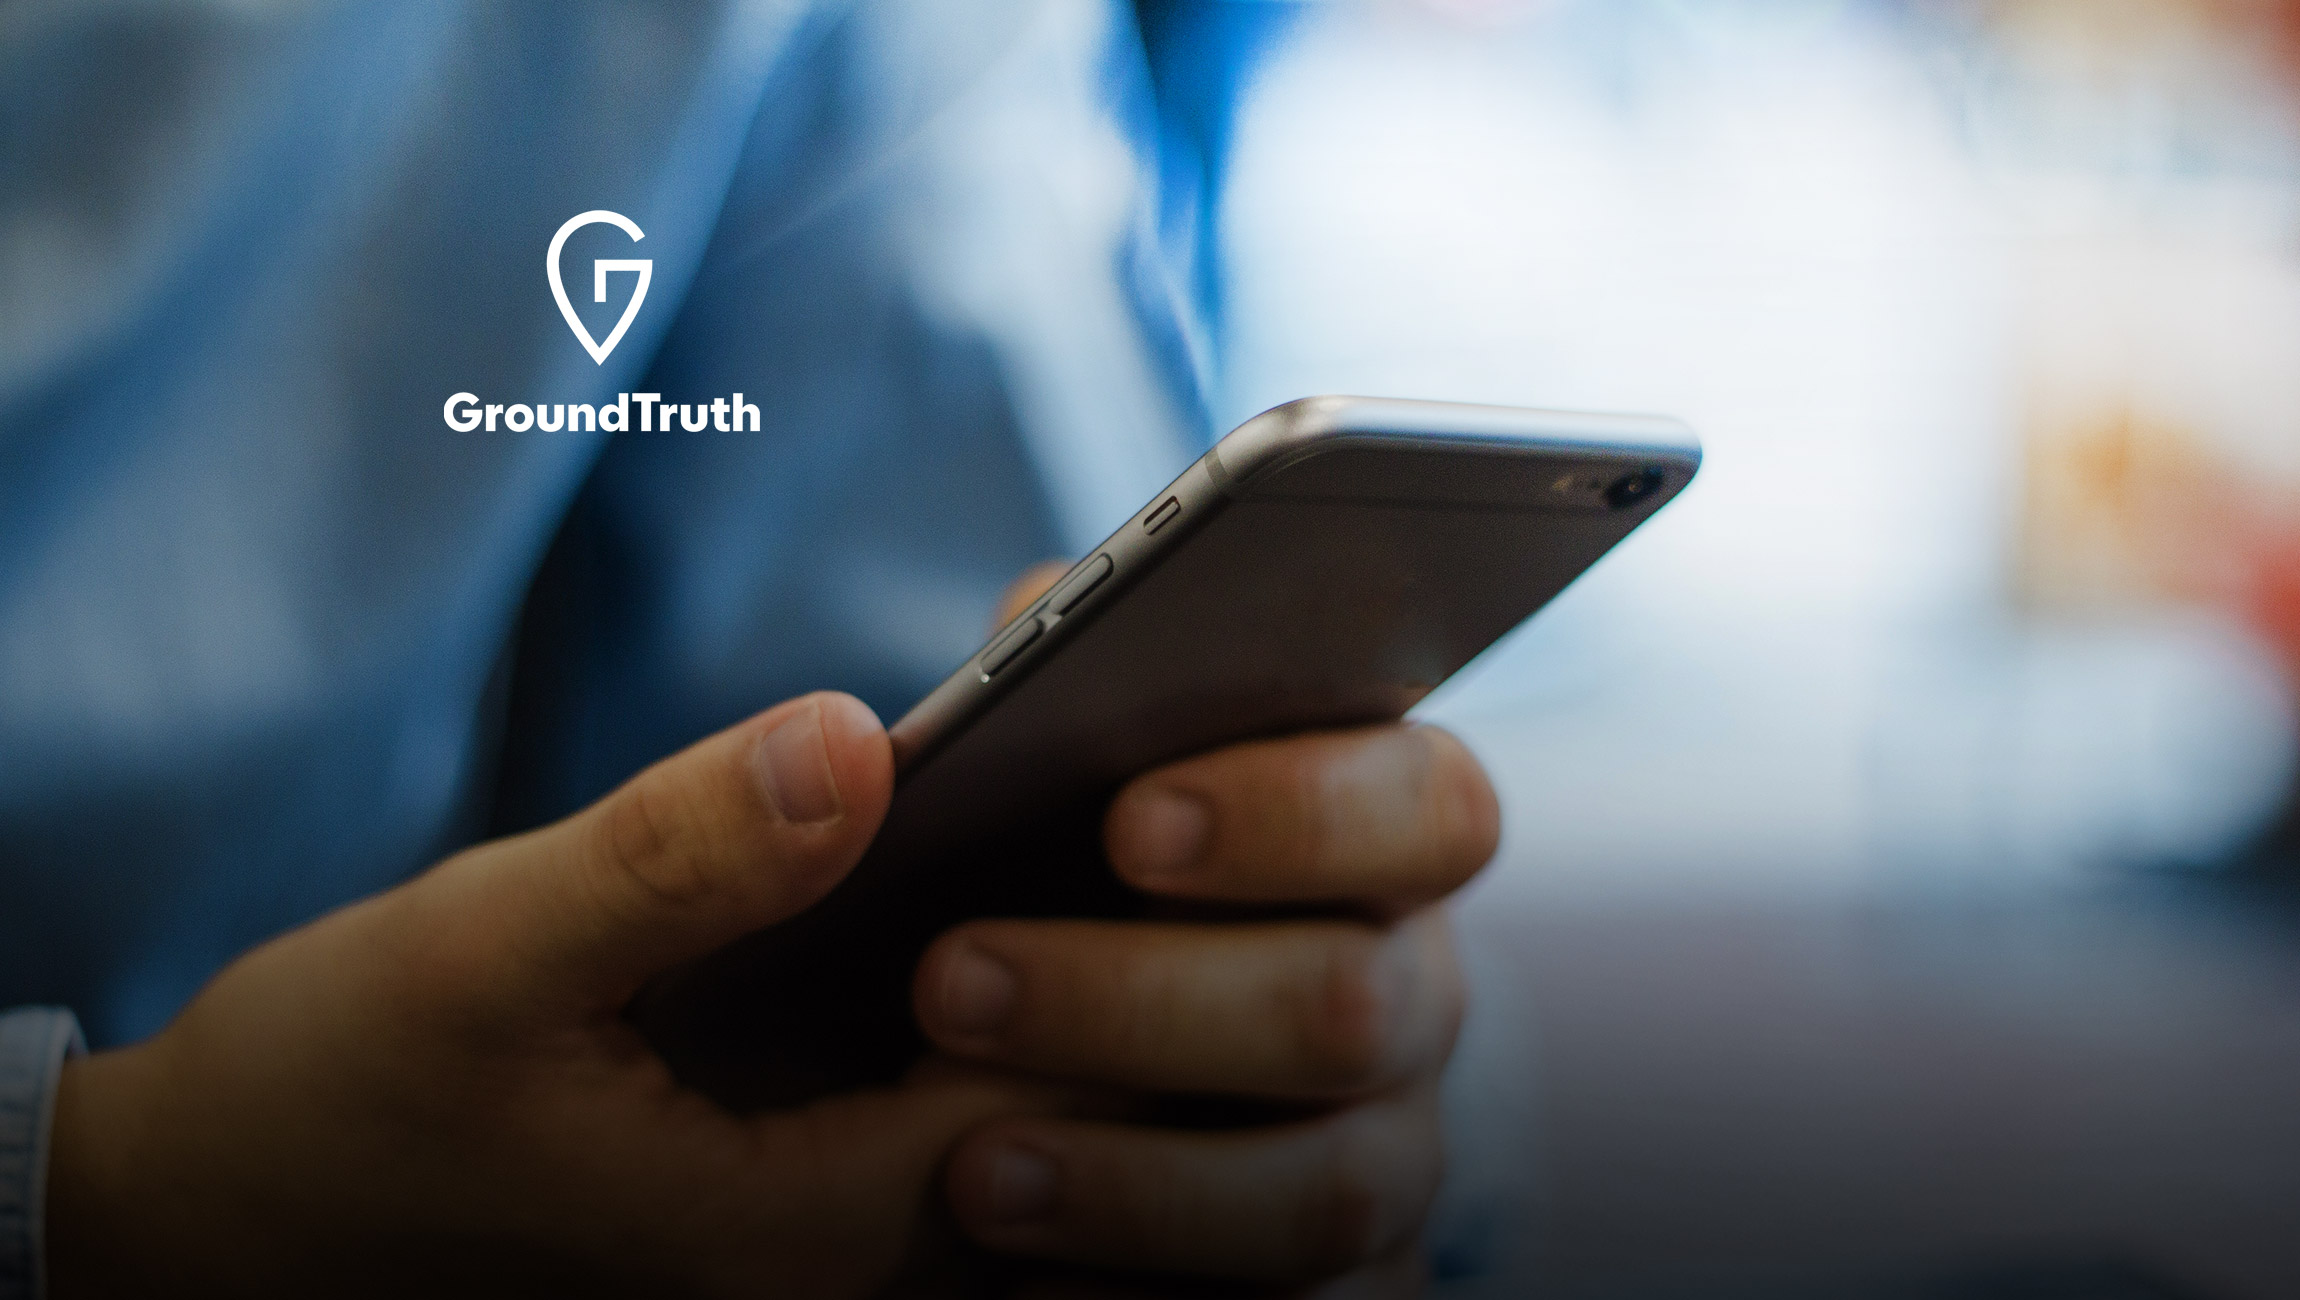 GroundTruth and Yext Integration Offers Marketers Ability to Create Location-Based Mobile Advertising Campaigns